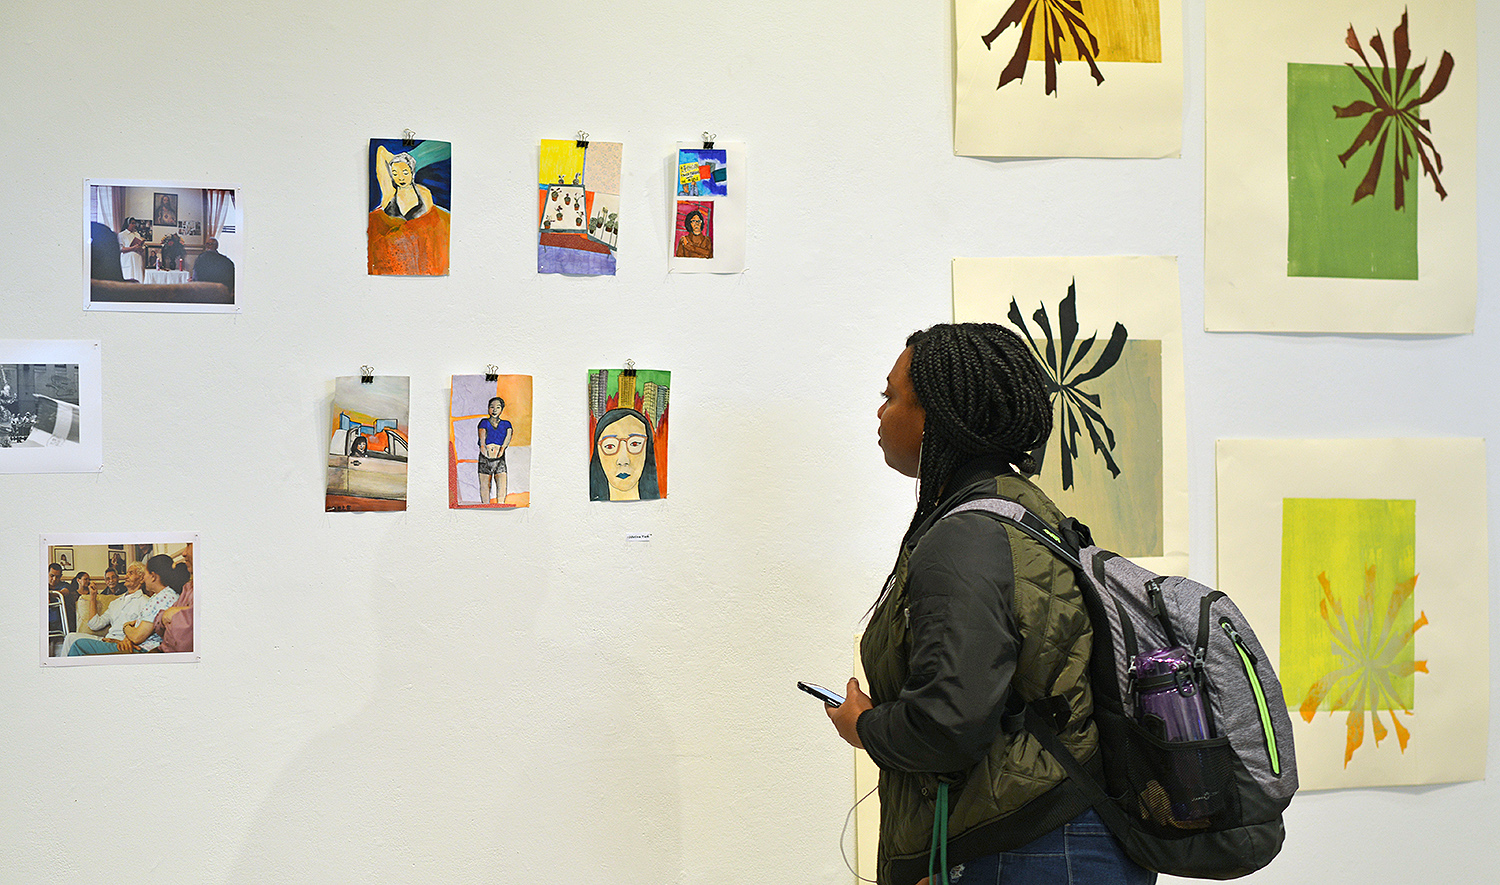 On Feb. 23, students of color presented their visual work at the Be the Art showcase. The exhibit is housed in Zilkha Gallery.